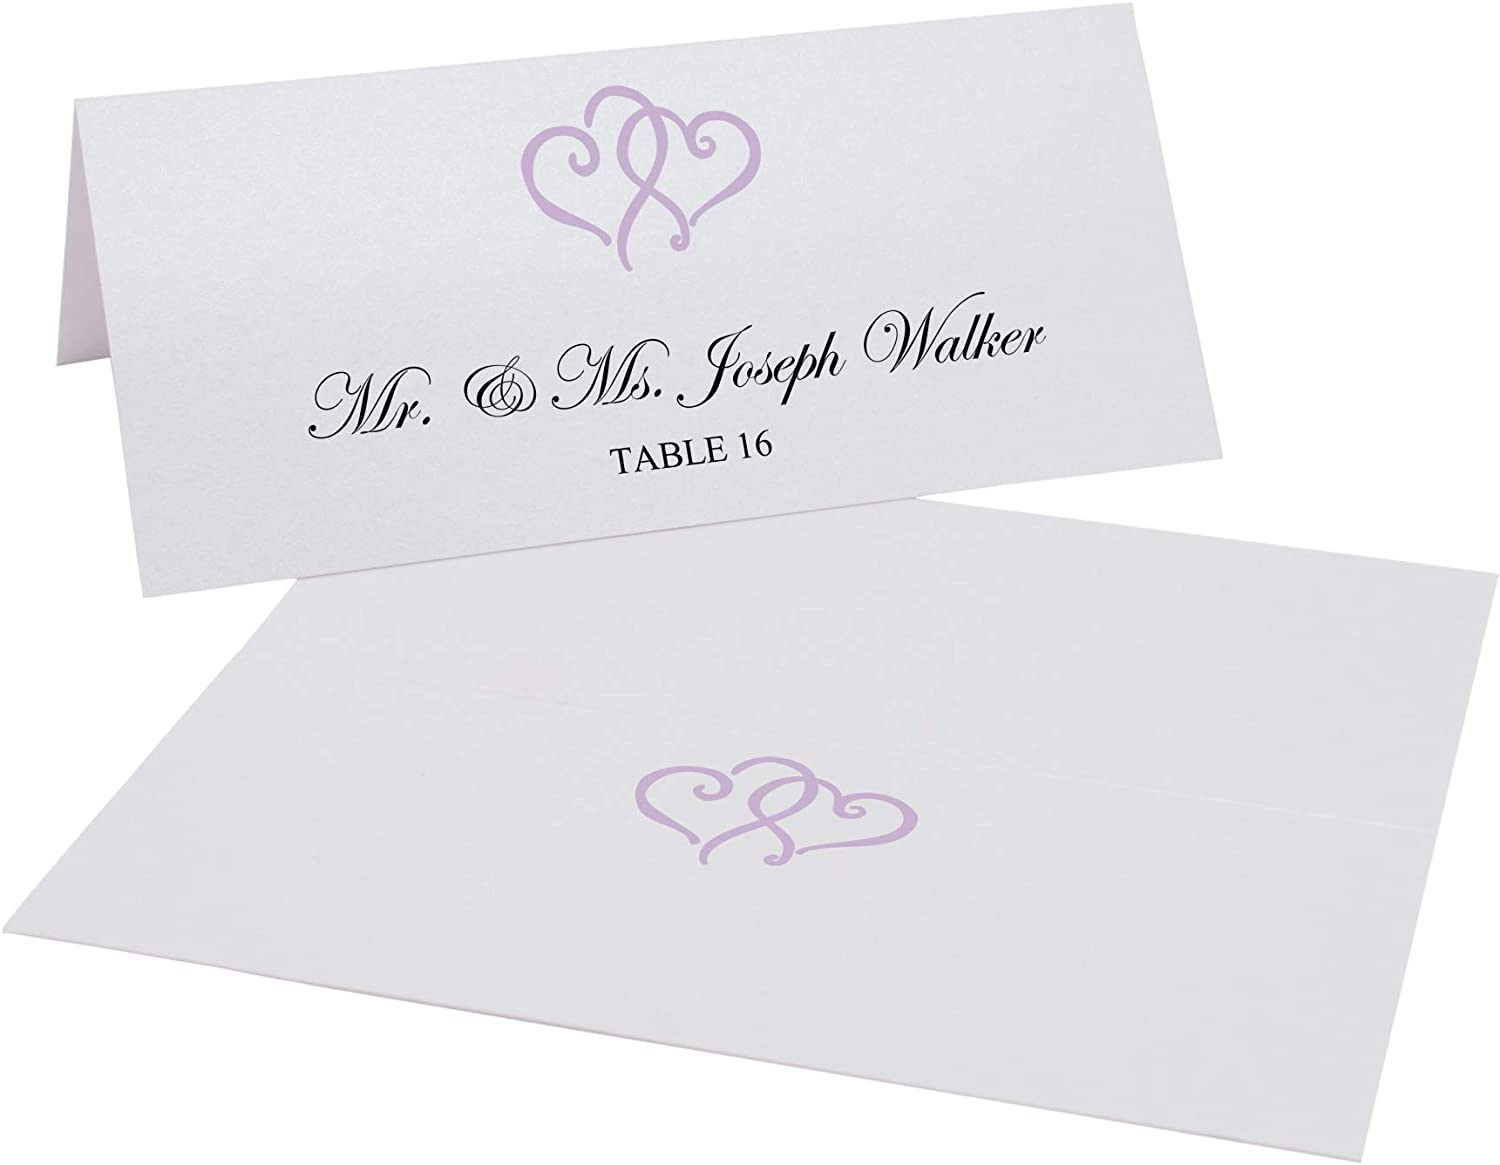 Linked Hearts Printable Place Cards, Lavender, Set of 60 (10 Sheets), Laser & Inkjet Printers - Perfect for Wedding, Parties, and Special Events